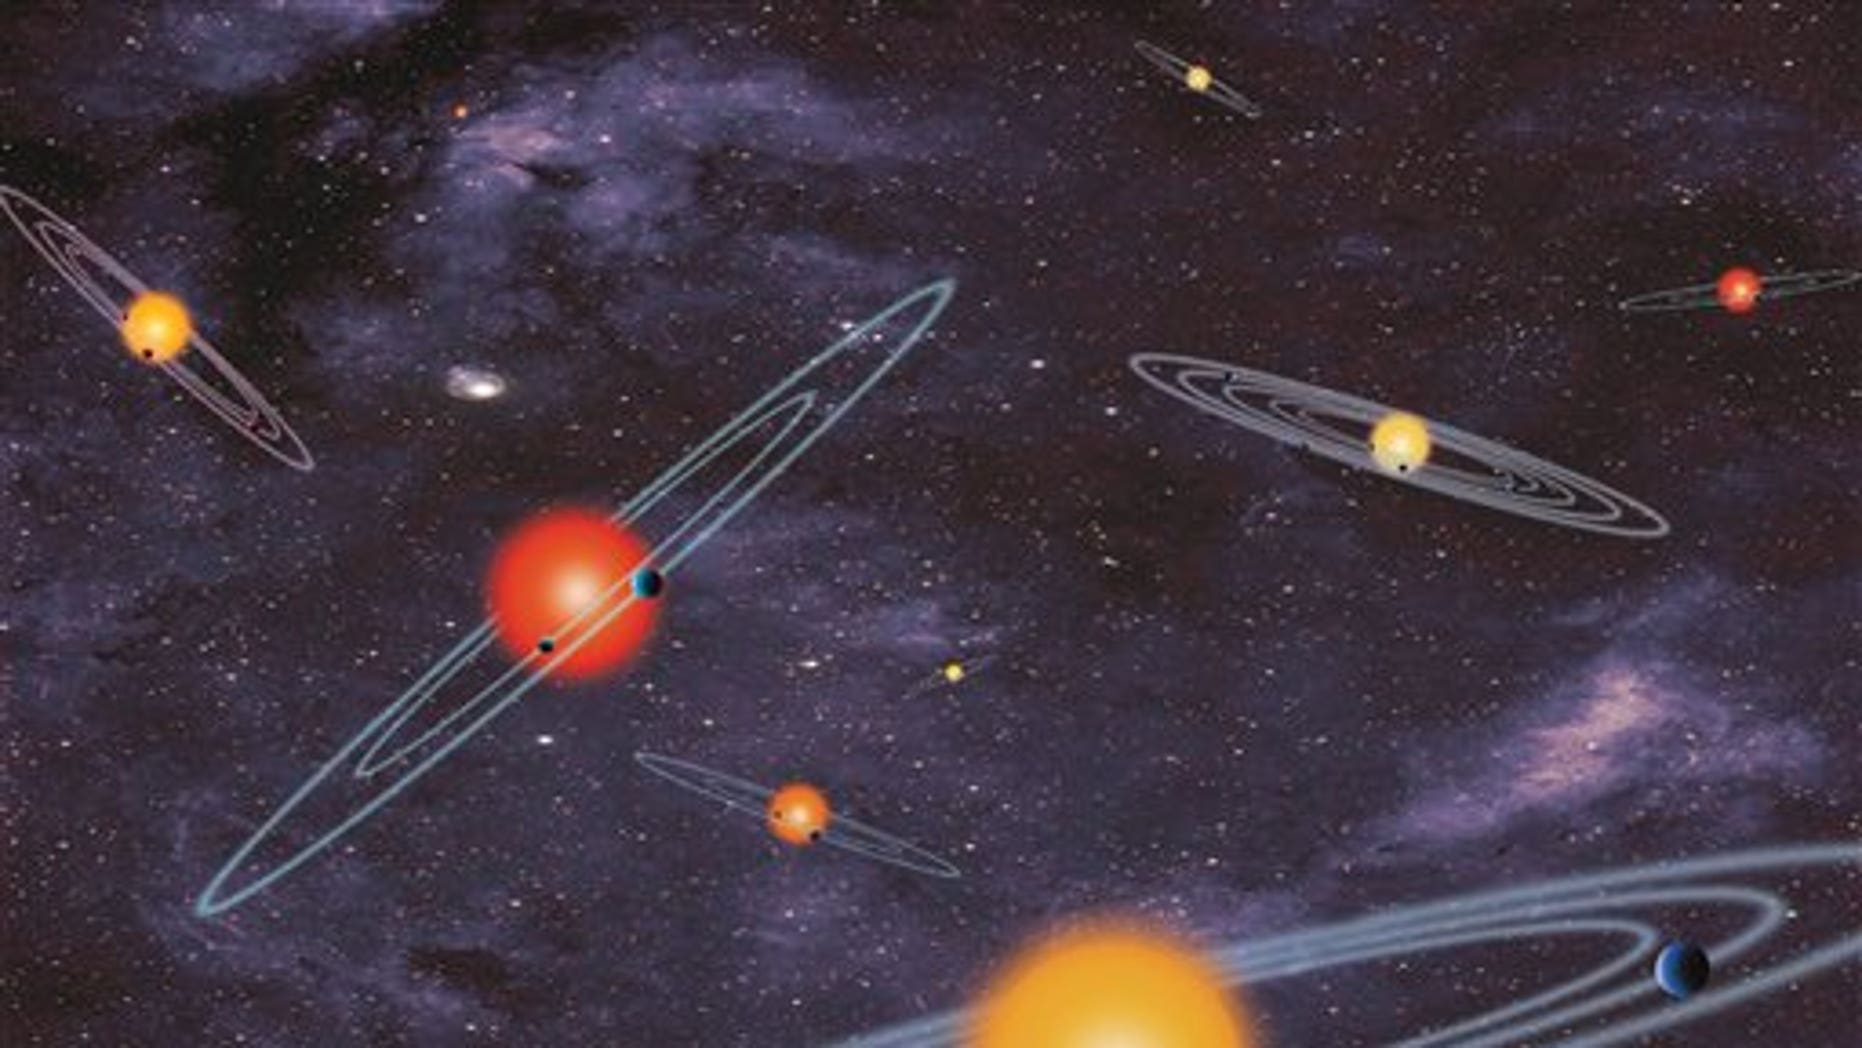 This handout artist conception provided by NASA depicts multiple-transiting planet systems, which are stars with more than one planet. The planets eclipse or transit their host star from the vantage point of the observer. This angle is called edge-on. Our galaxy is looking far more crowded as NASA Wednesday confirmed a bonanza of 715 newly discovered planets circling stars other than our sun. Four of those new planets are in the habitable zones where it is not too hot or not cold. NASAs Kepler planet-hunting telescope nearly doubled the number of planets scientists have discovered in the galaxy, pushing the figure to about 1,700. Twenty years ago, astronomers had not found any planets outside our solar system. (AP Photo/NASA)